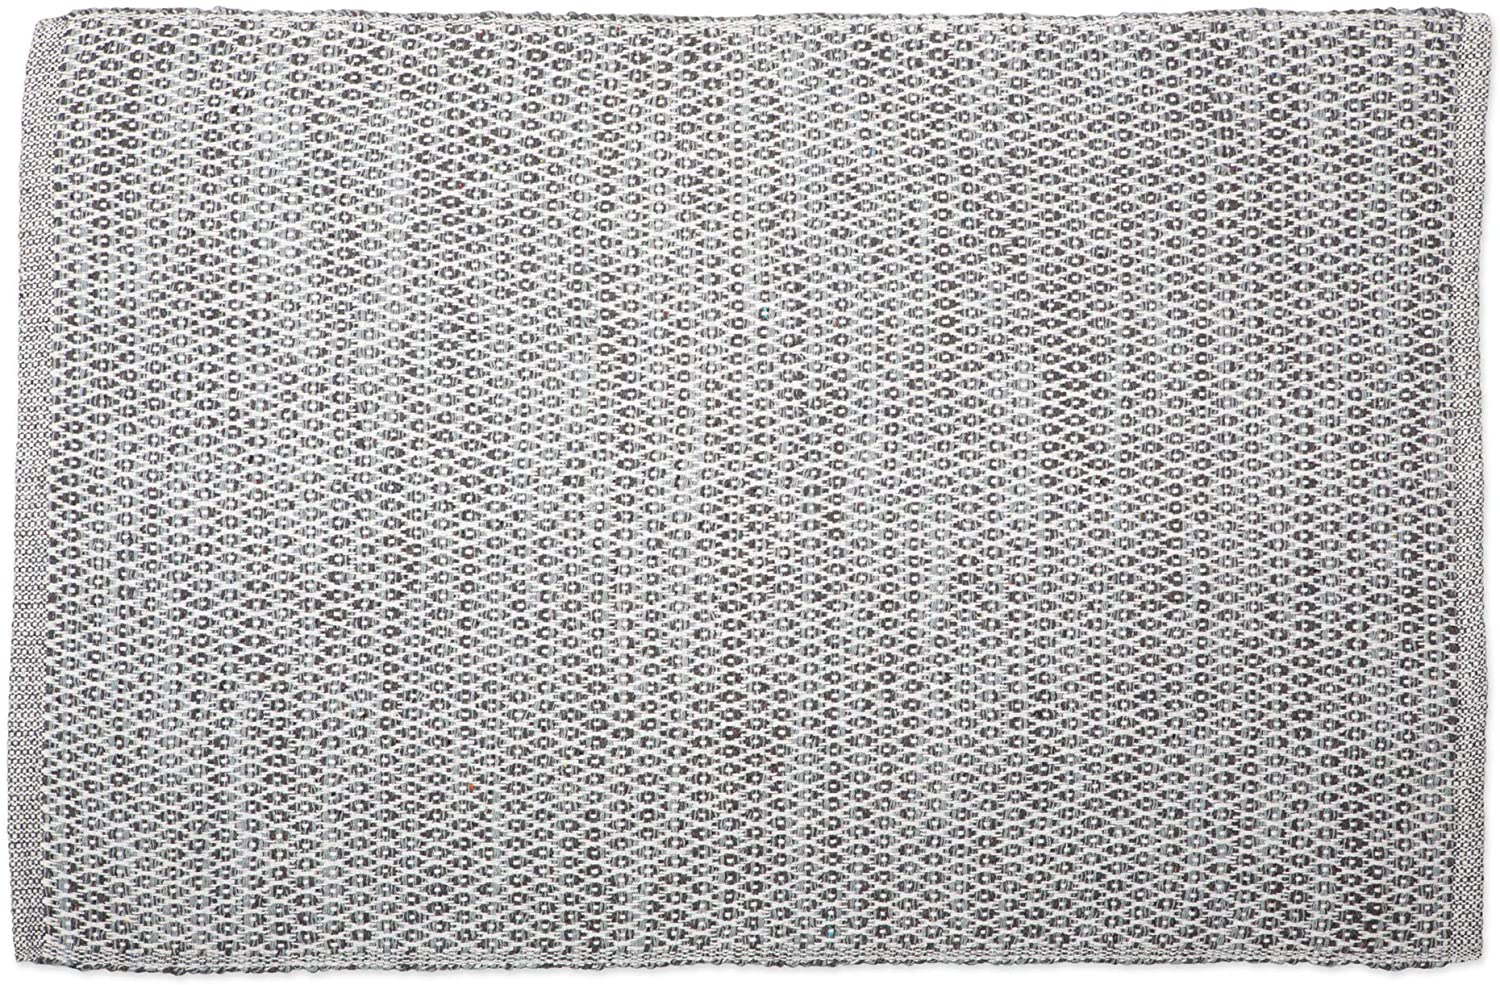 DII Contemporary Reversible Machine Washable Recycled Yarn Area Rug for Bedroom, Living Room, and Kitchen, 2'x3', Diamond Gray